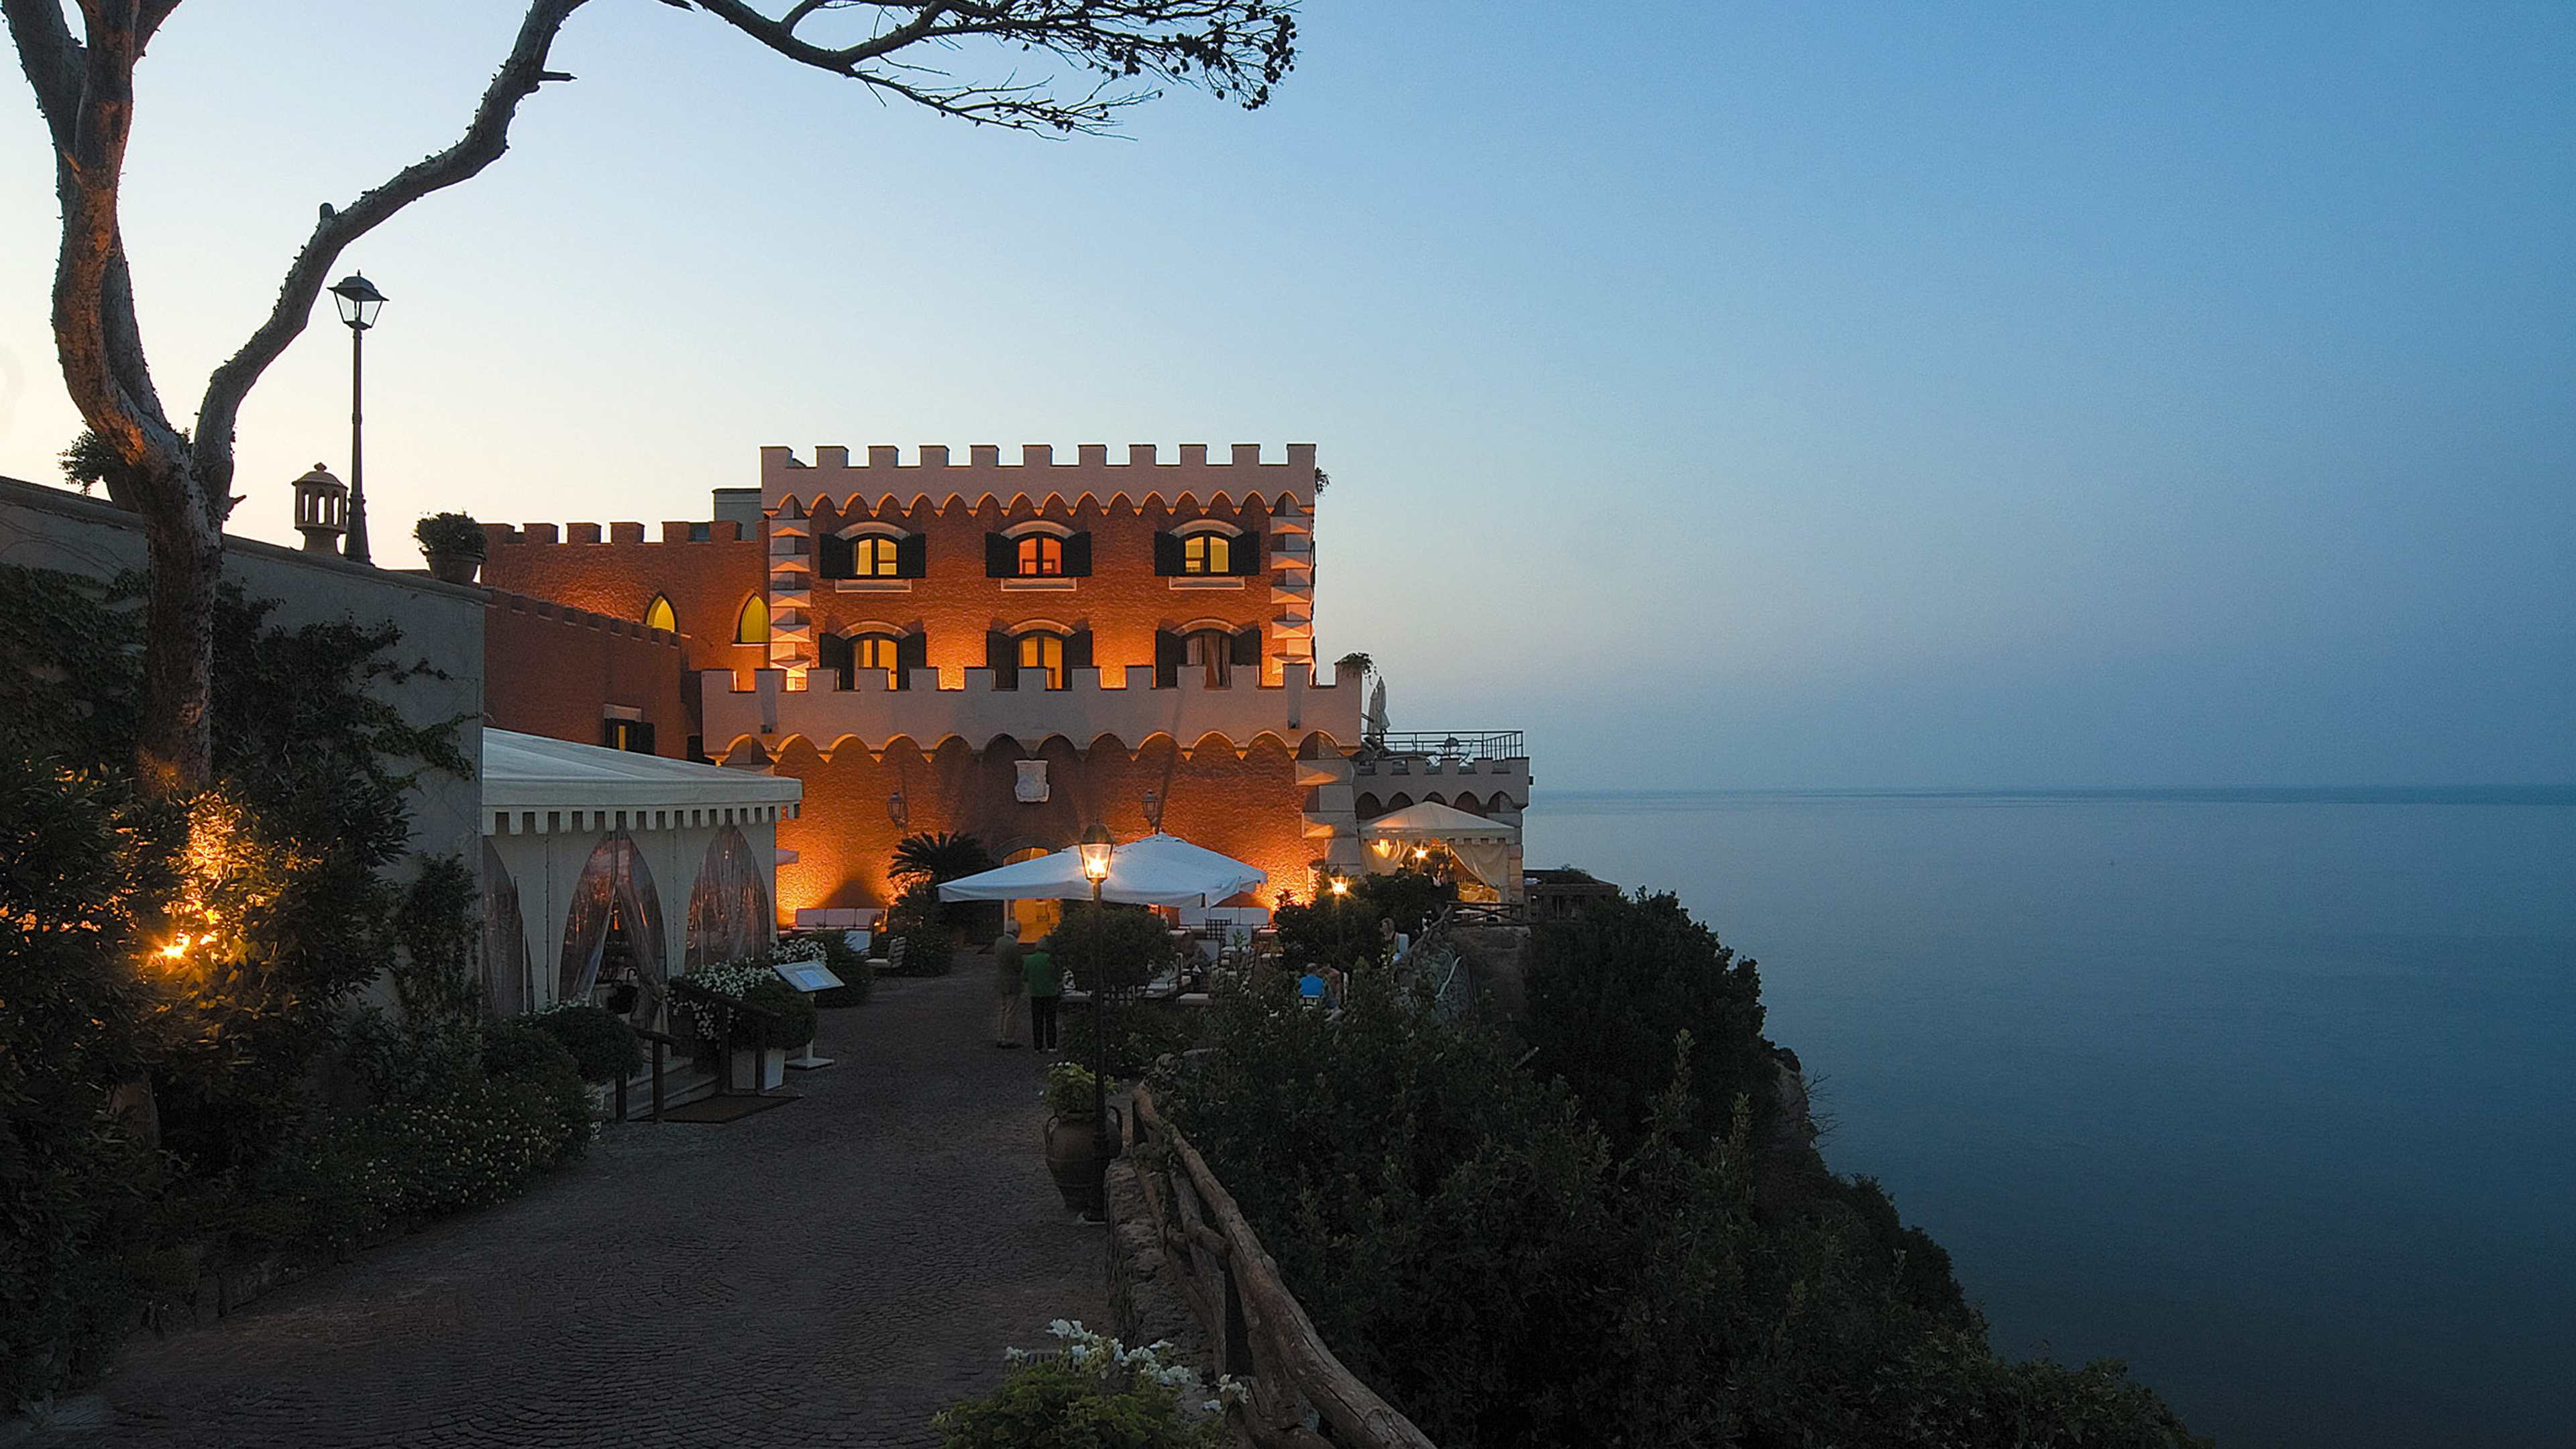 Mezzatorre Resort & Spa perched on a hill at sunset